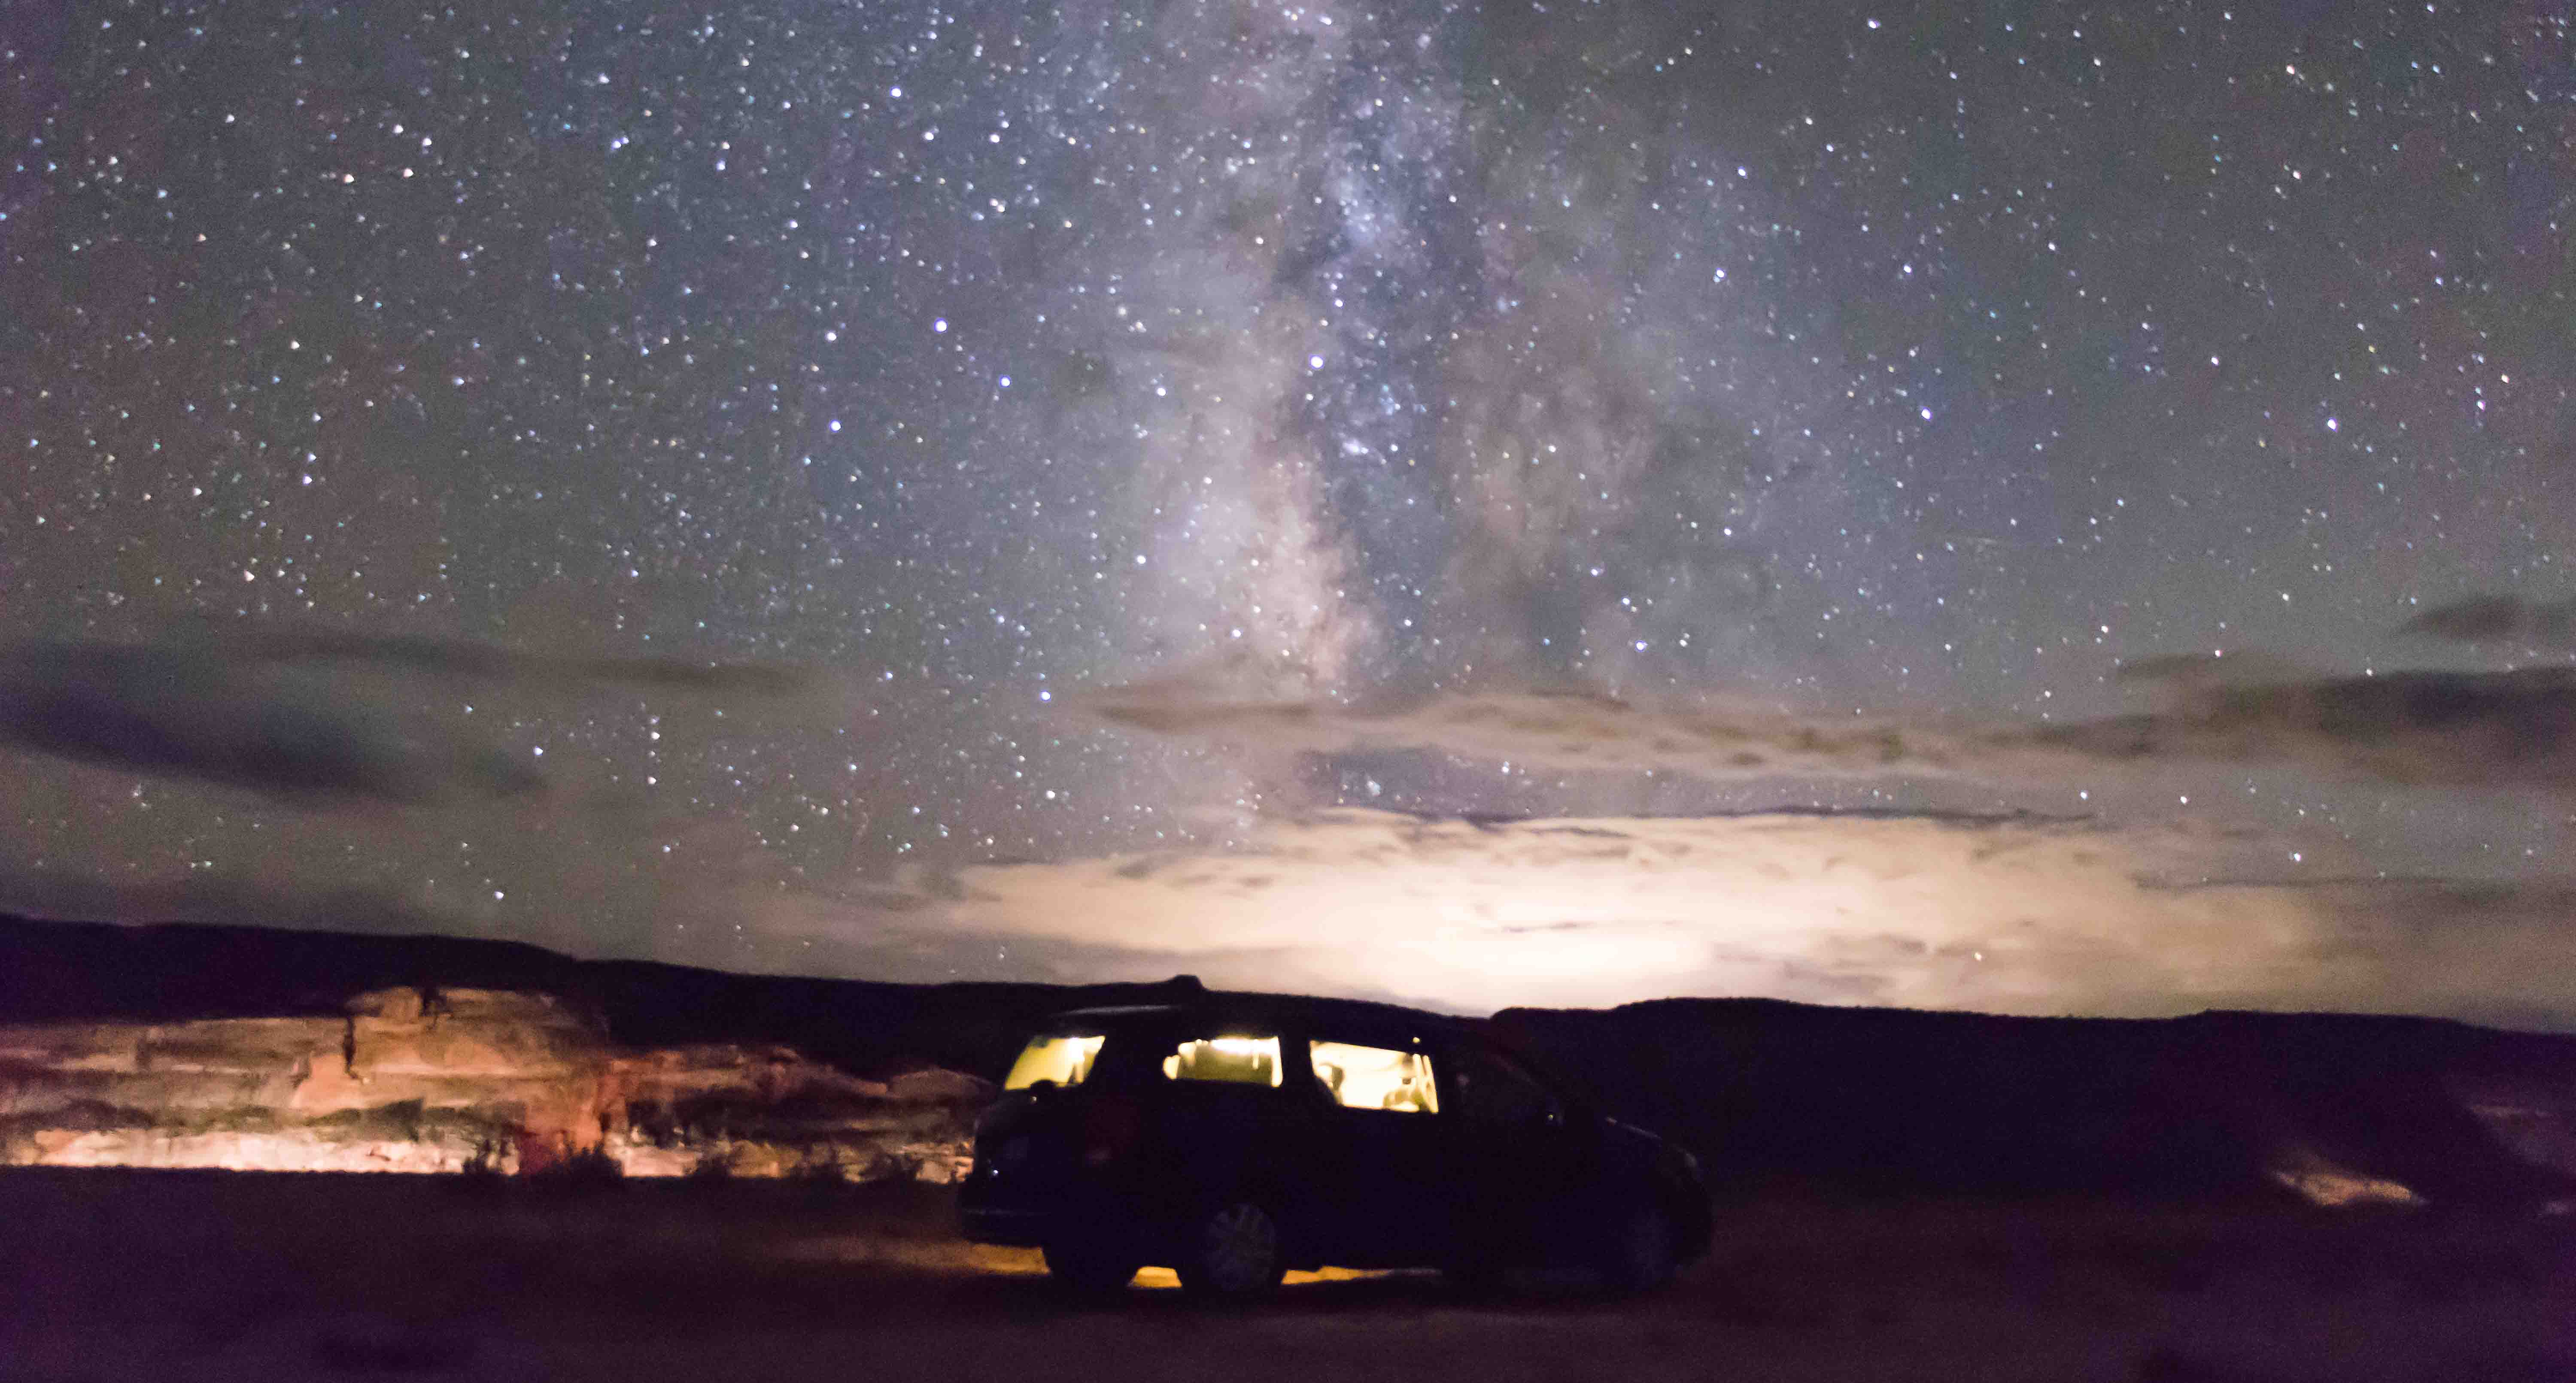 Sleeping under the stars, anywhere